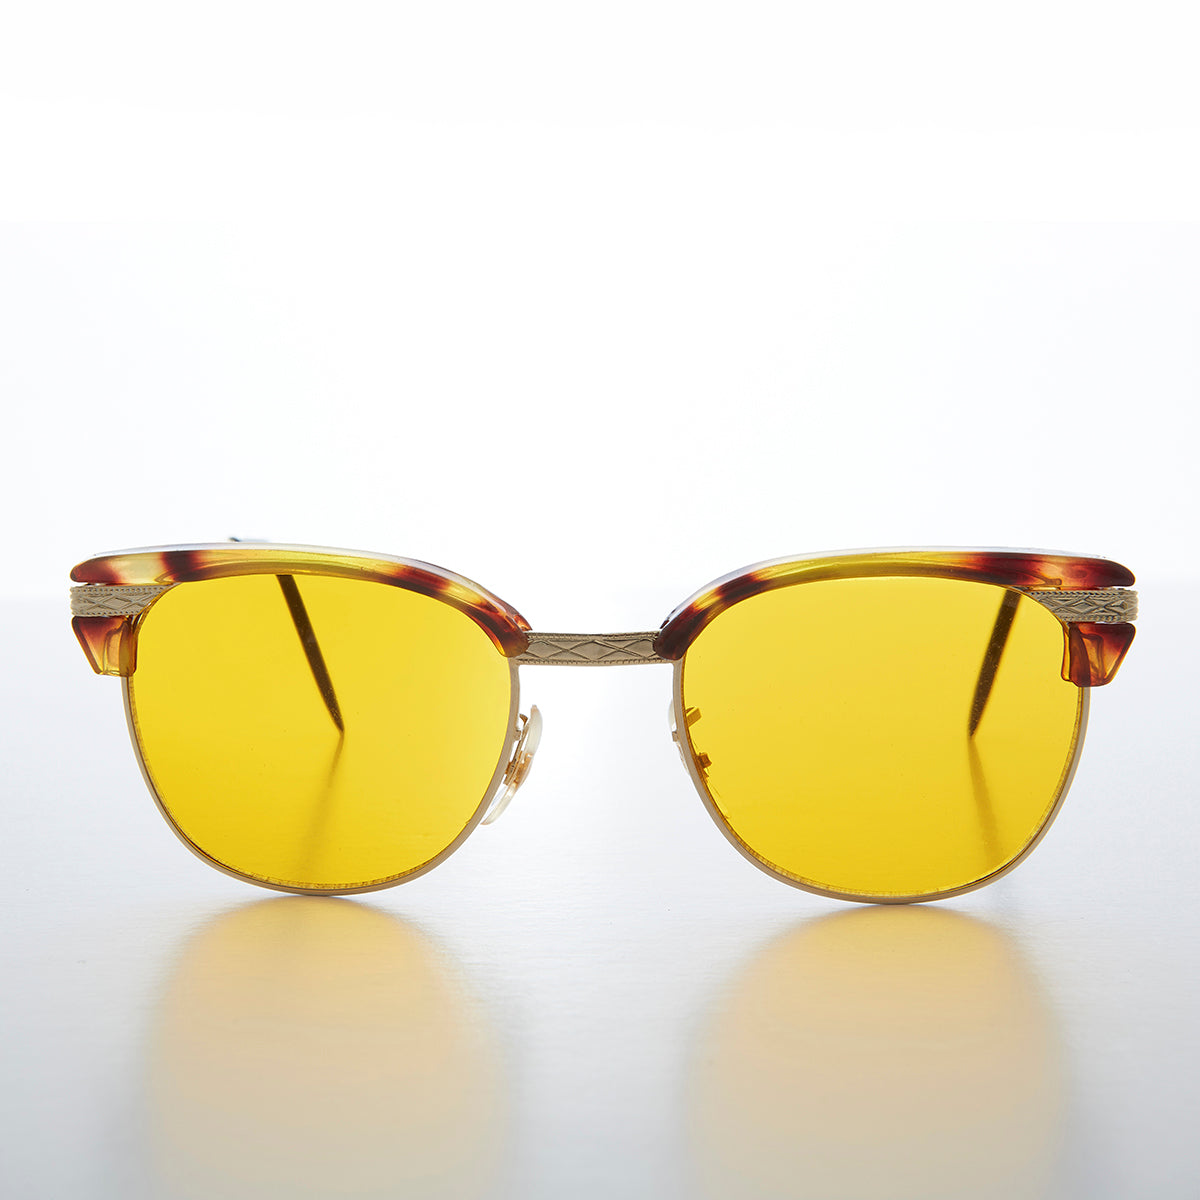 Yellow Amber Tinted Lens Classic Browline Vintage Sunglass